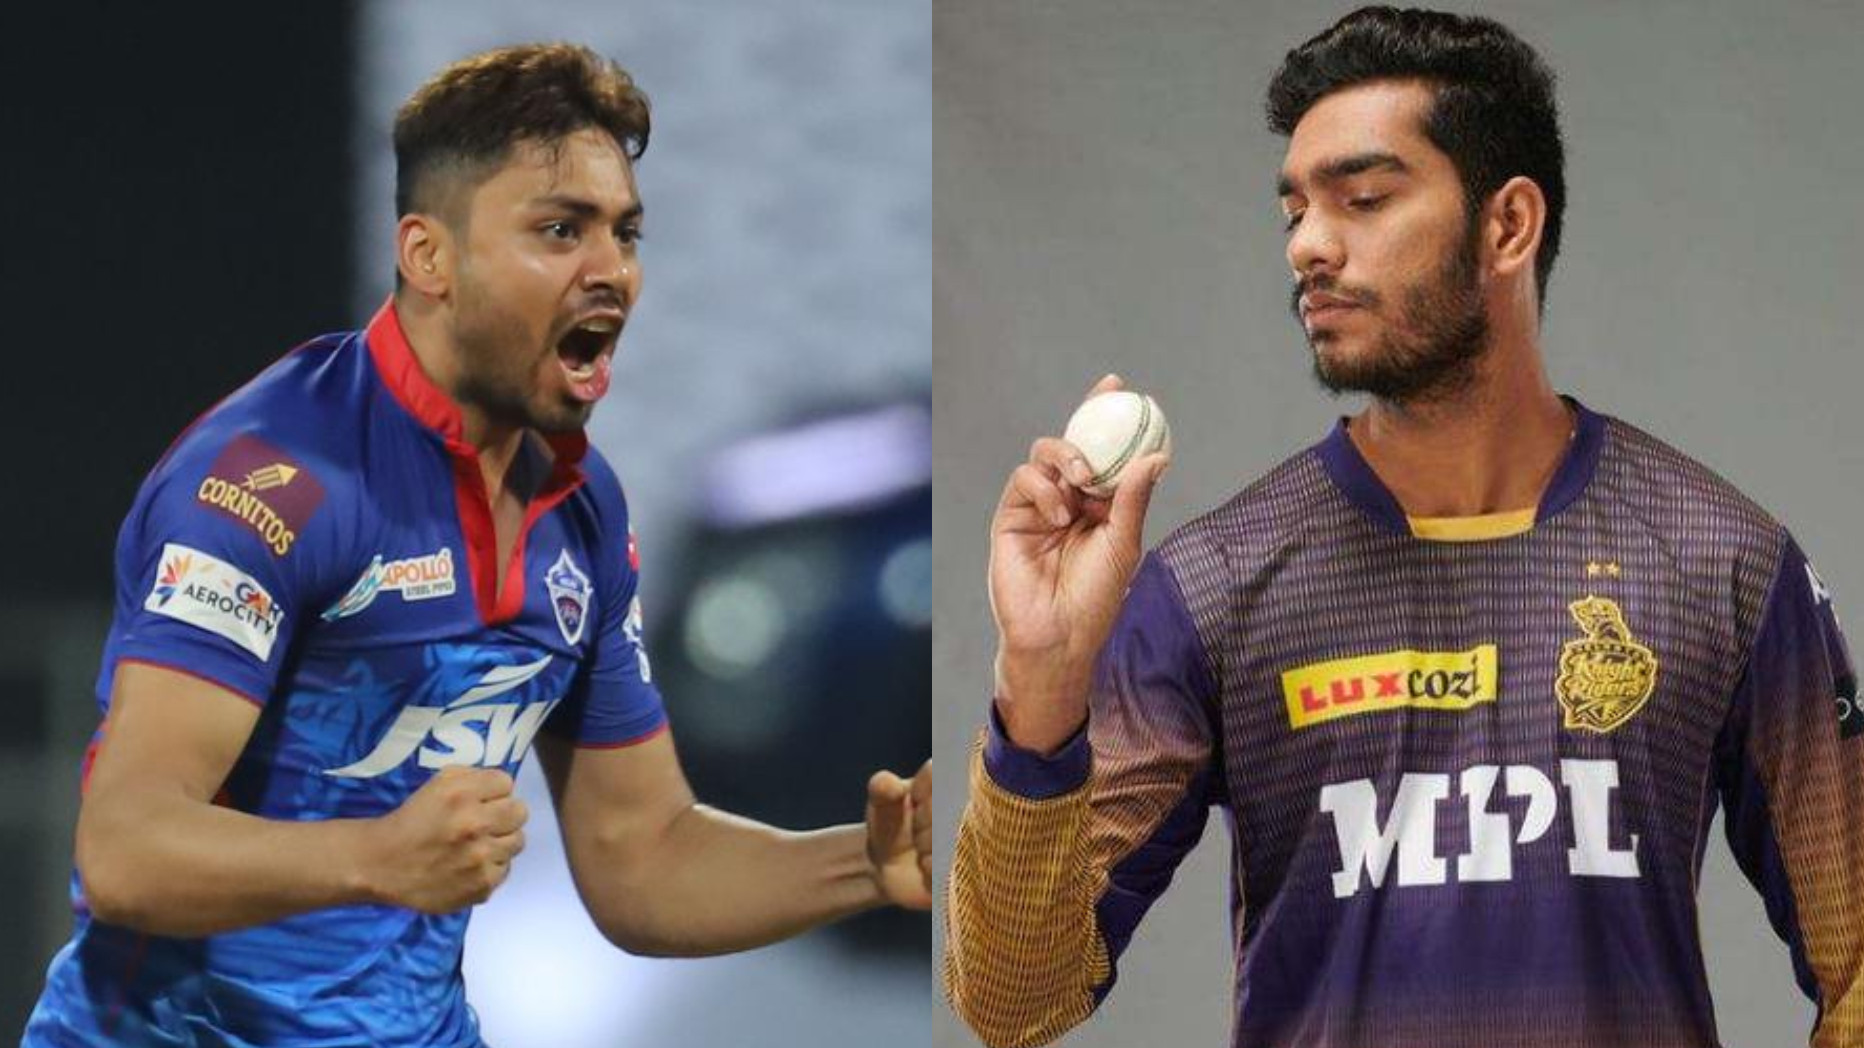 T20 World Cup 2021: Avesh Khan, Venkatesh Iyer asked to stay back to join Indian team- Report